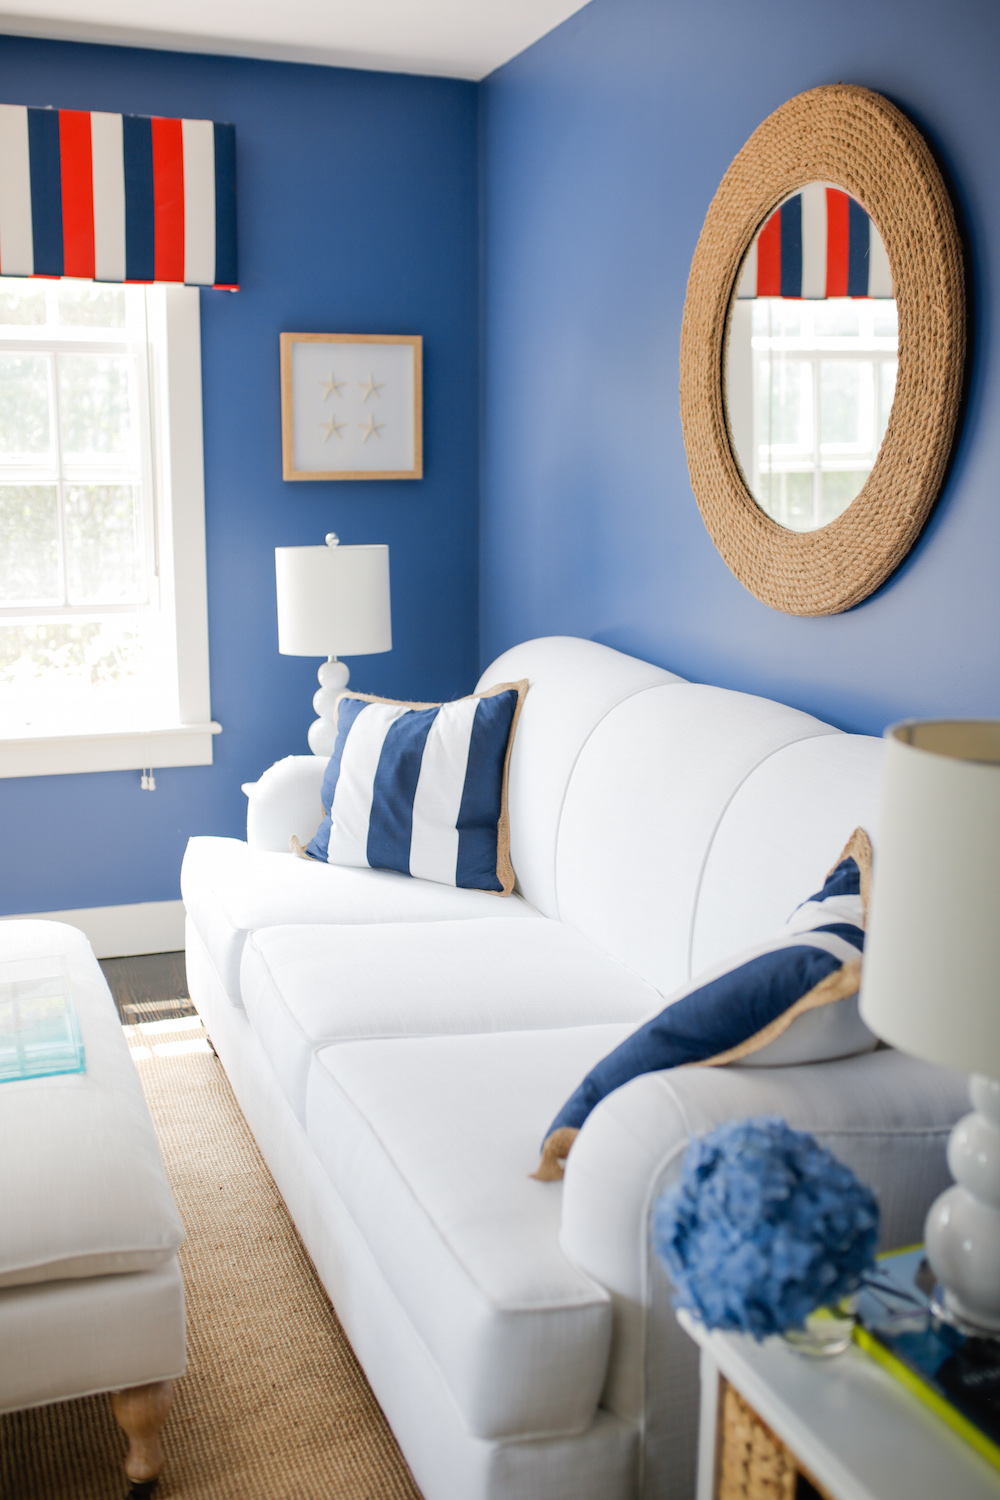 1 design darling nantucket sitting room overstock alice traditional roll arm sofa palimar sisal rope and glass mirror